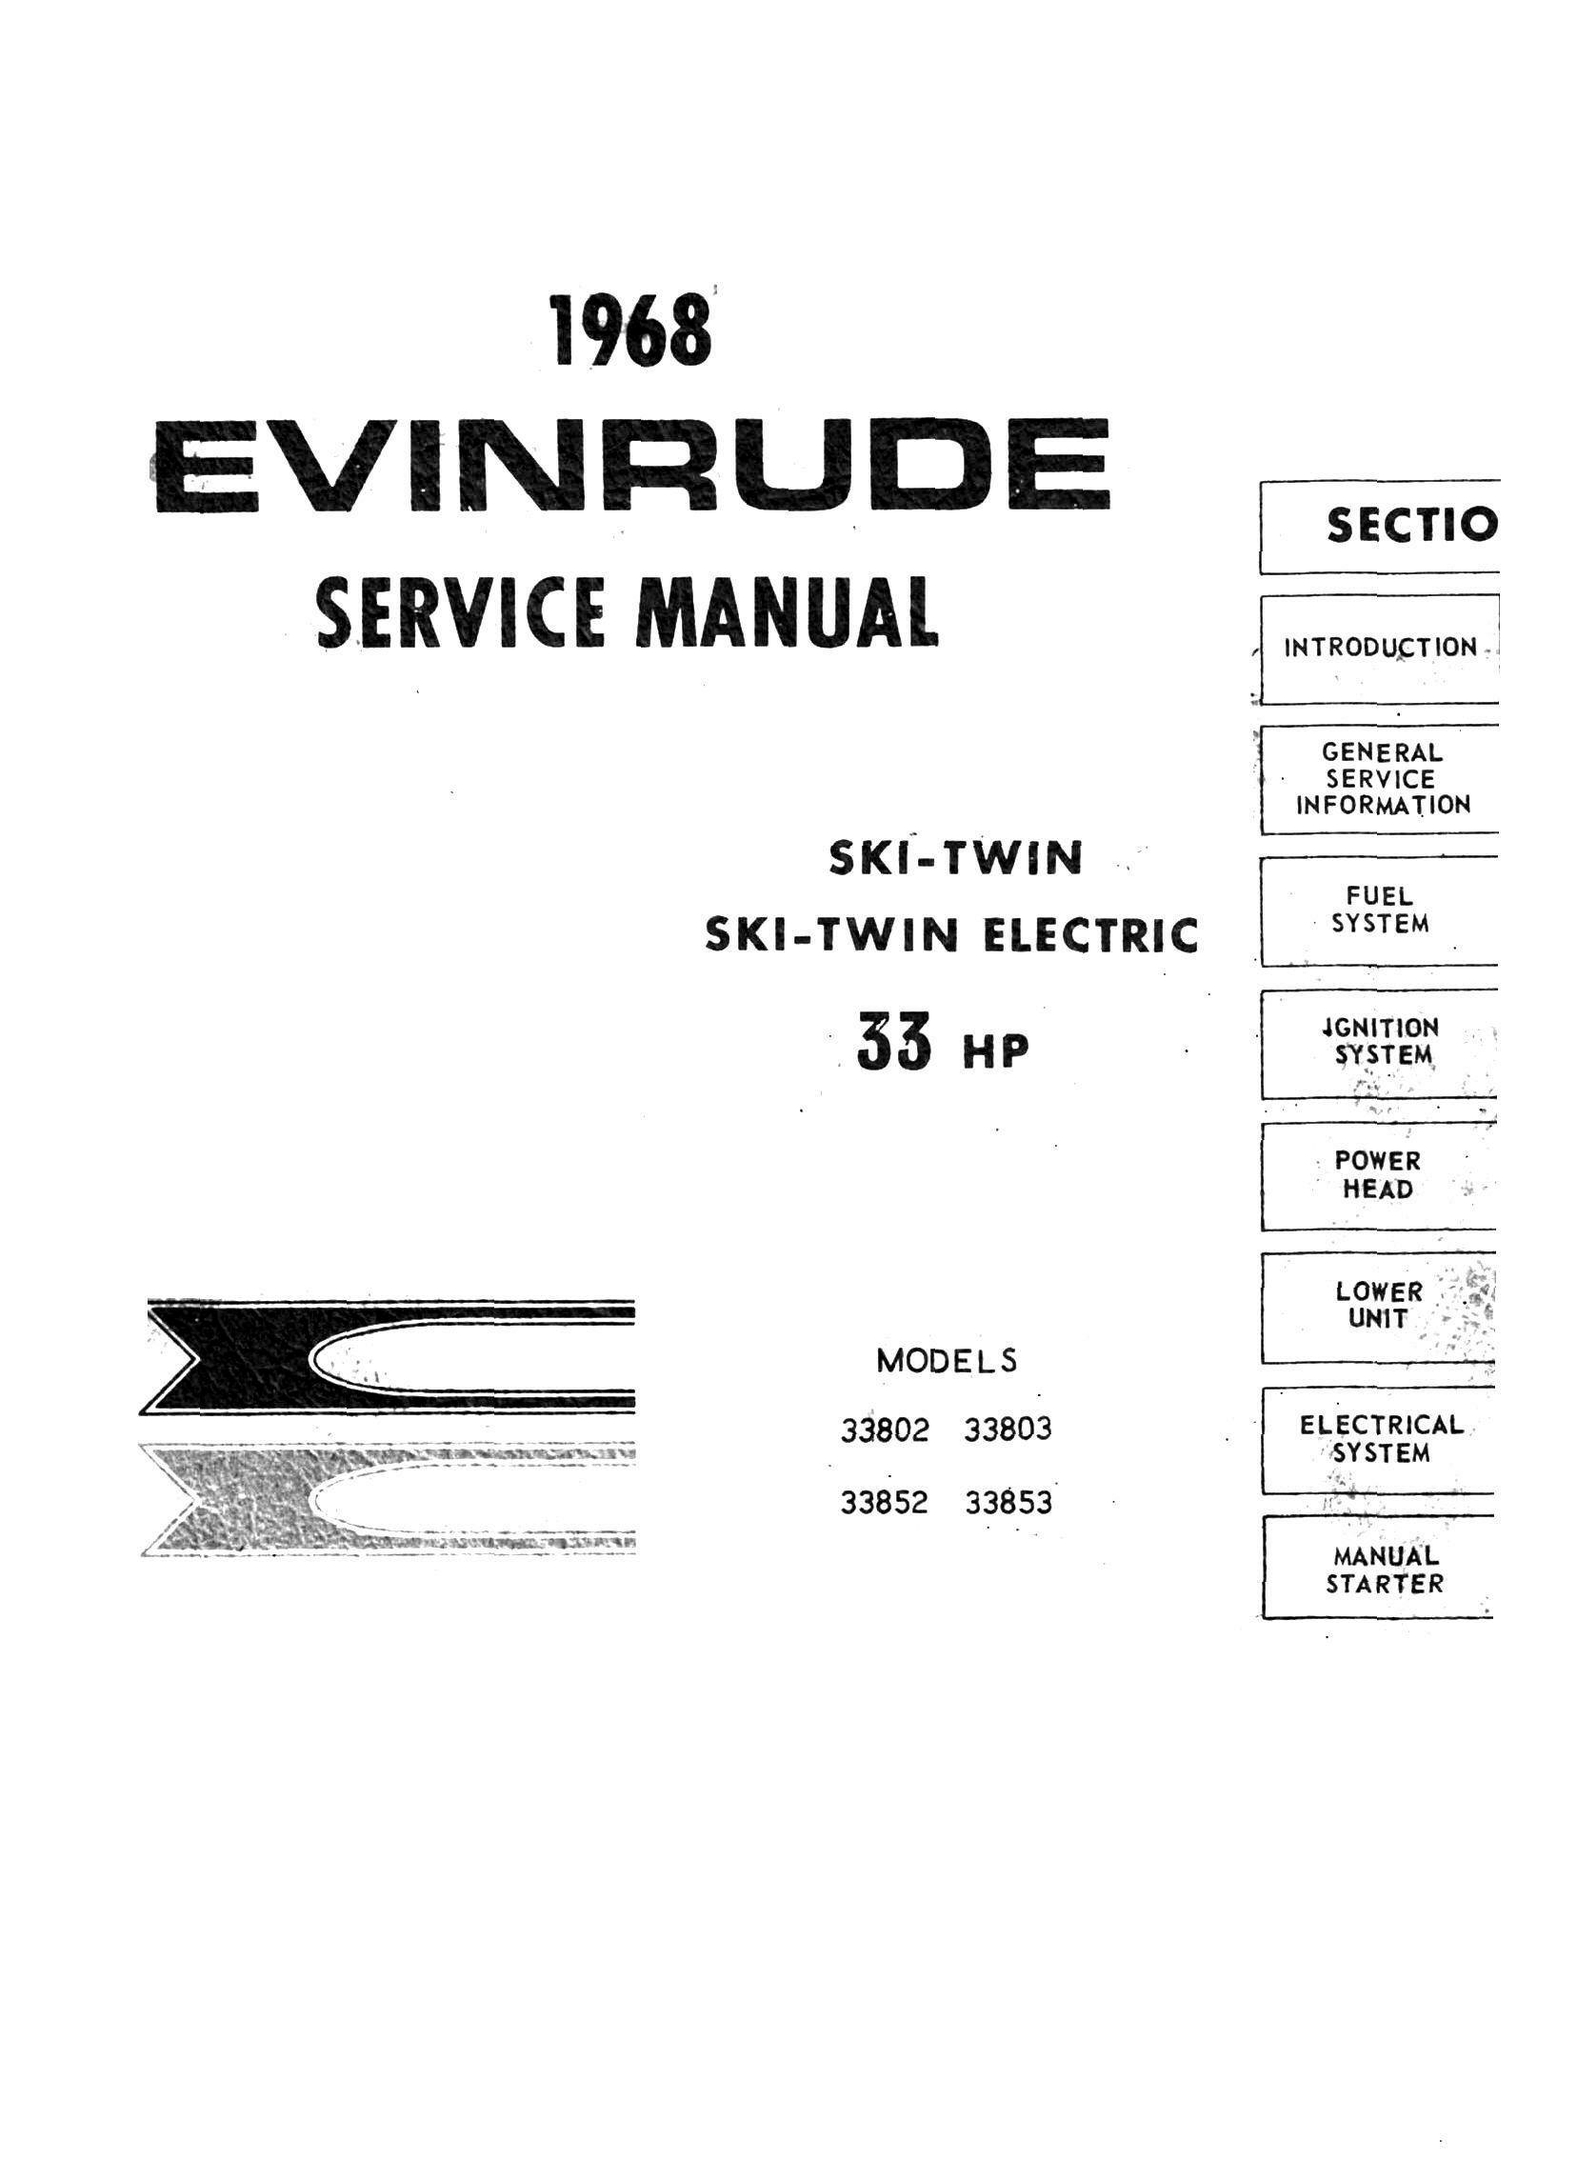 evinrude johnson 2 40 hp outboards includes electric motors 1973 1990 Array  - locksmith training manuals 200 locksmith manuals rh sellfy com